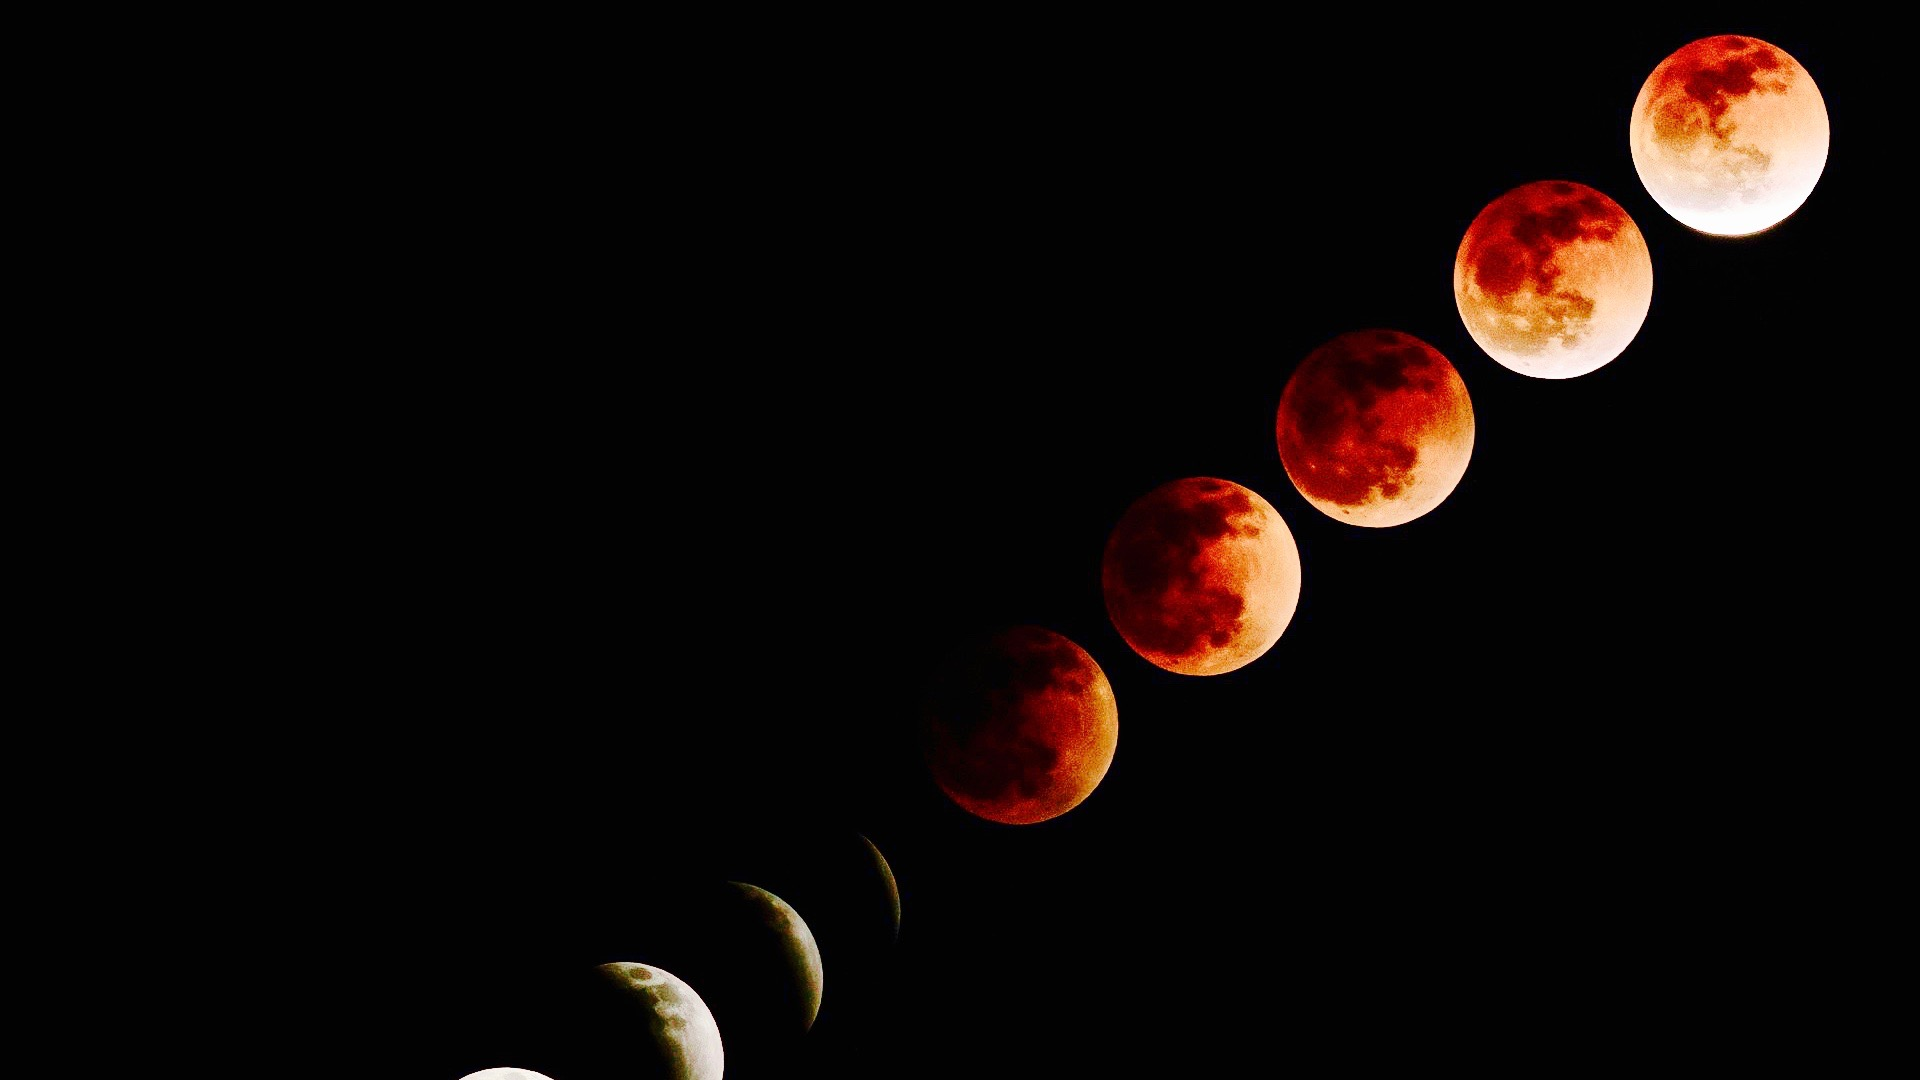 blood moon meaning in history - photo #23